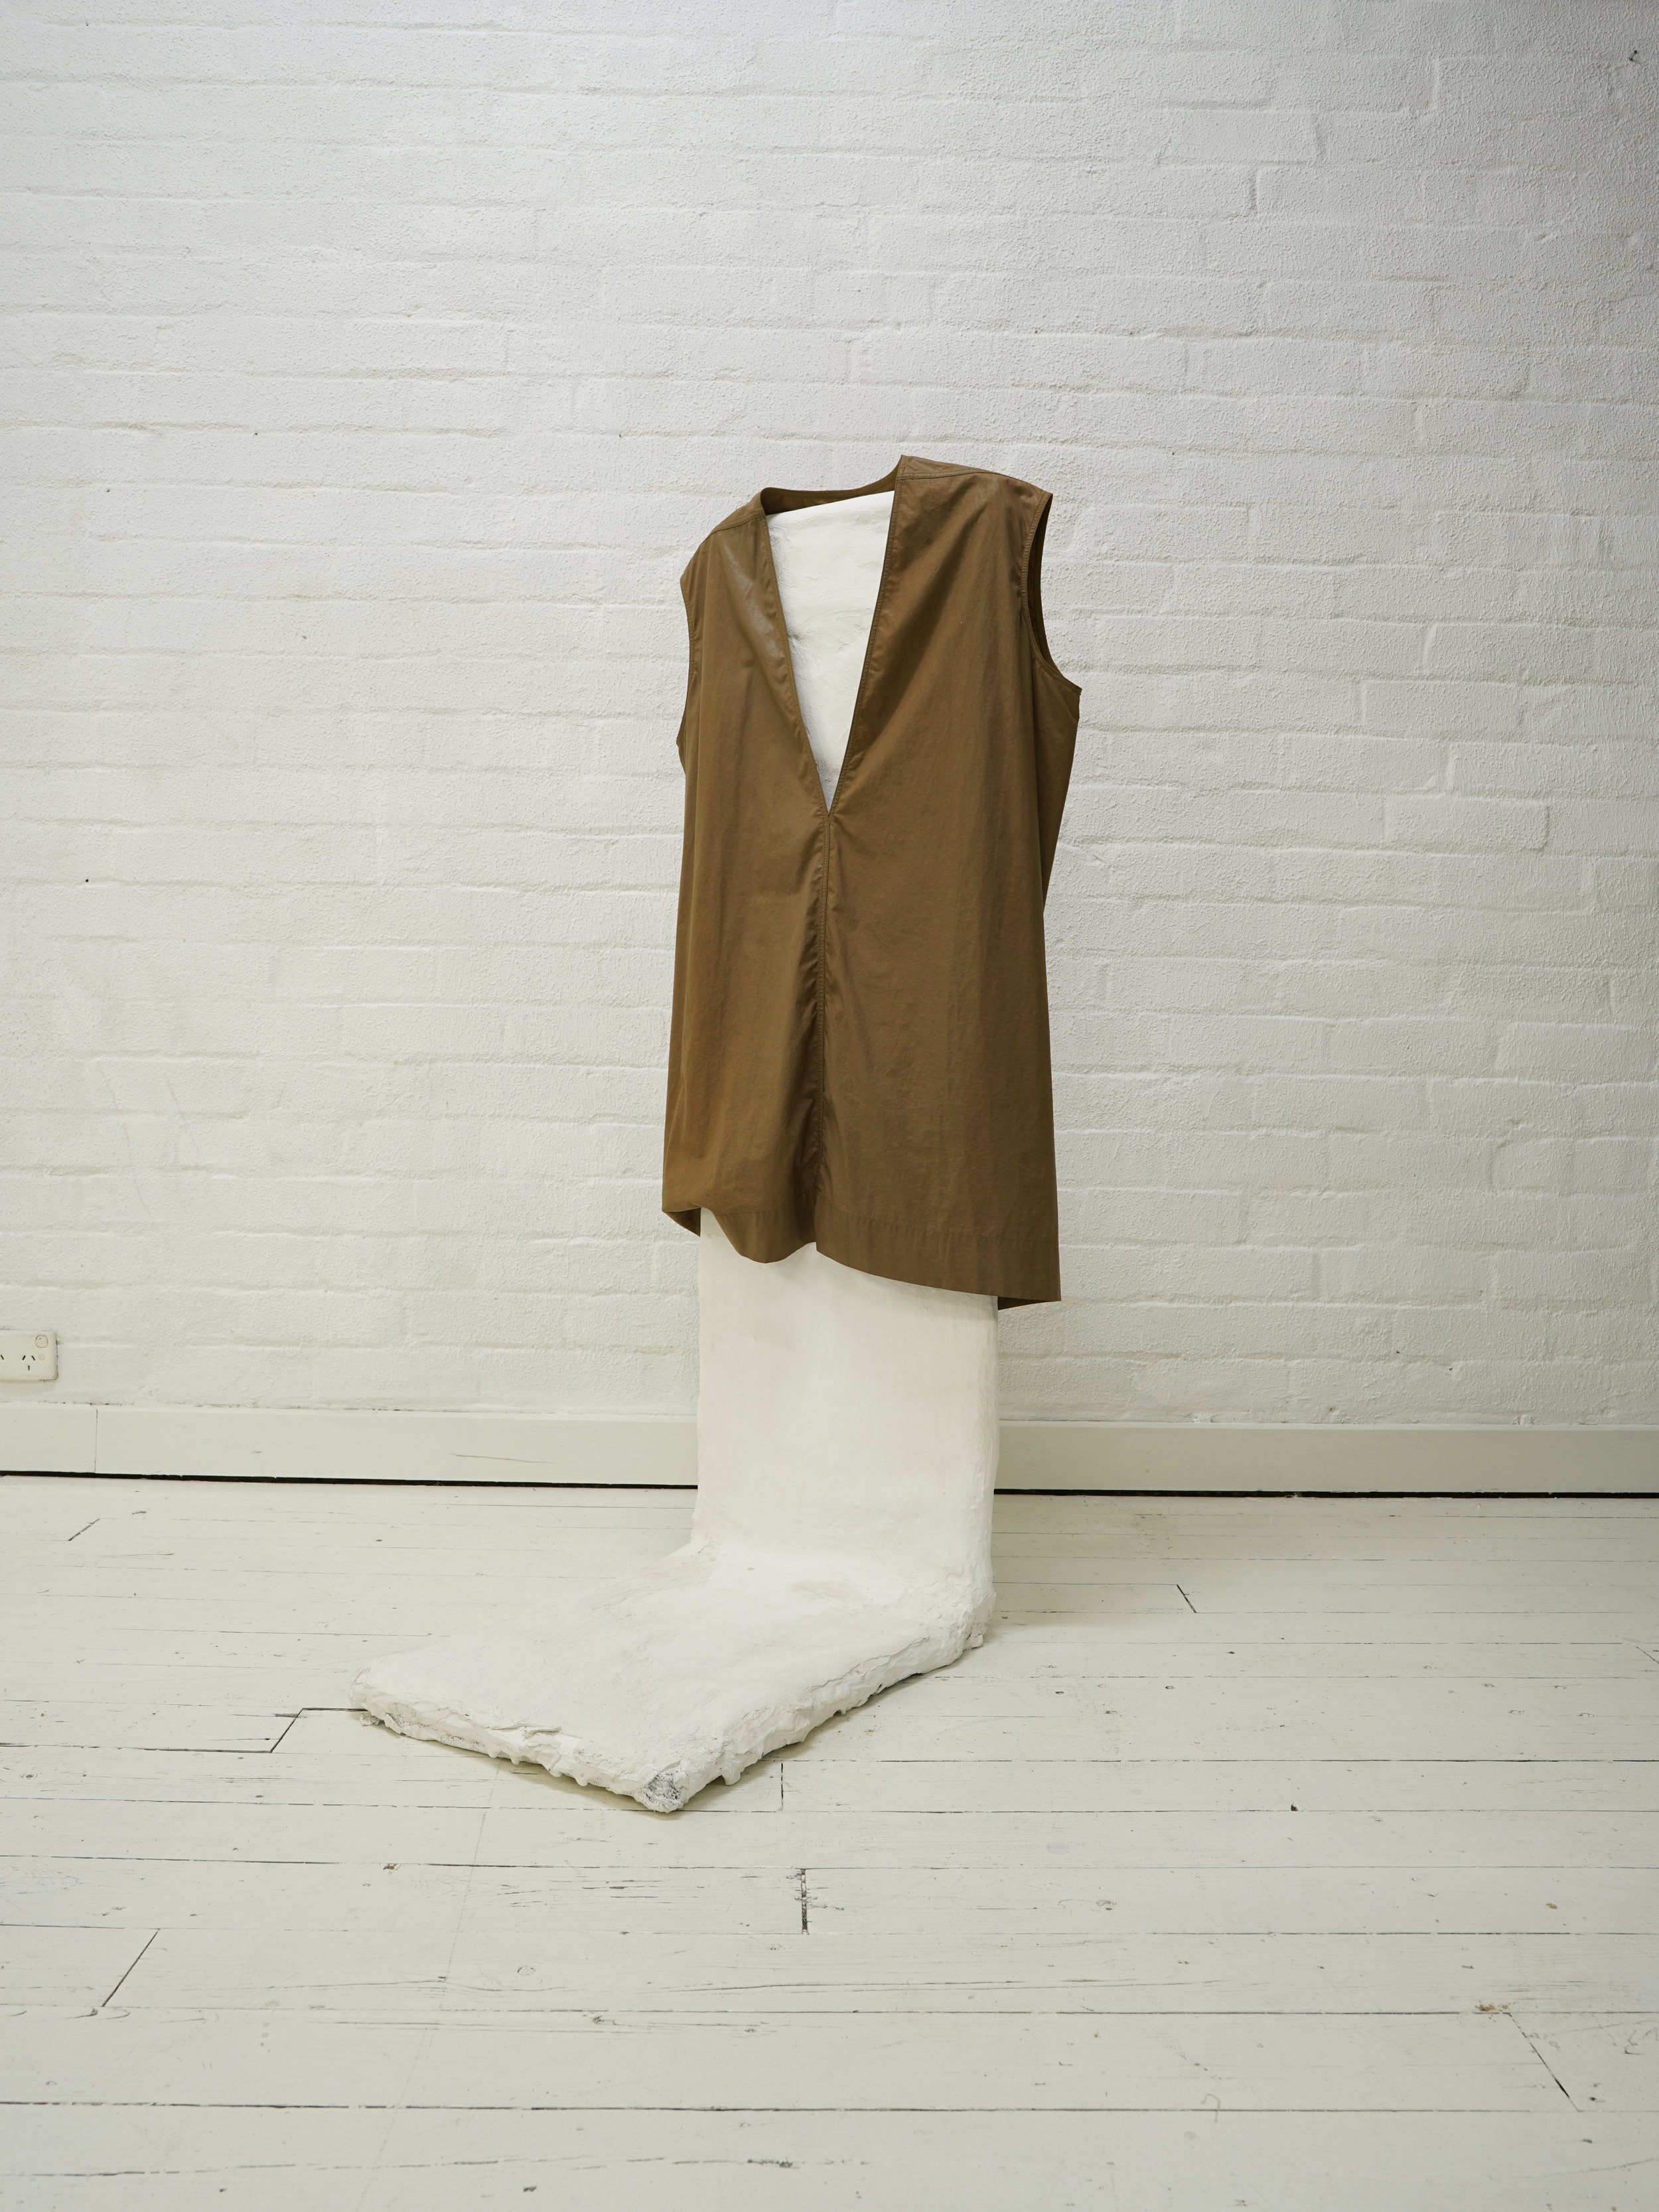 rick owens ss15 faun sleeveless top from the filter store collection